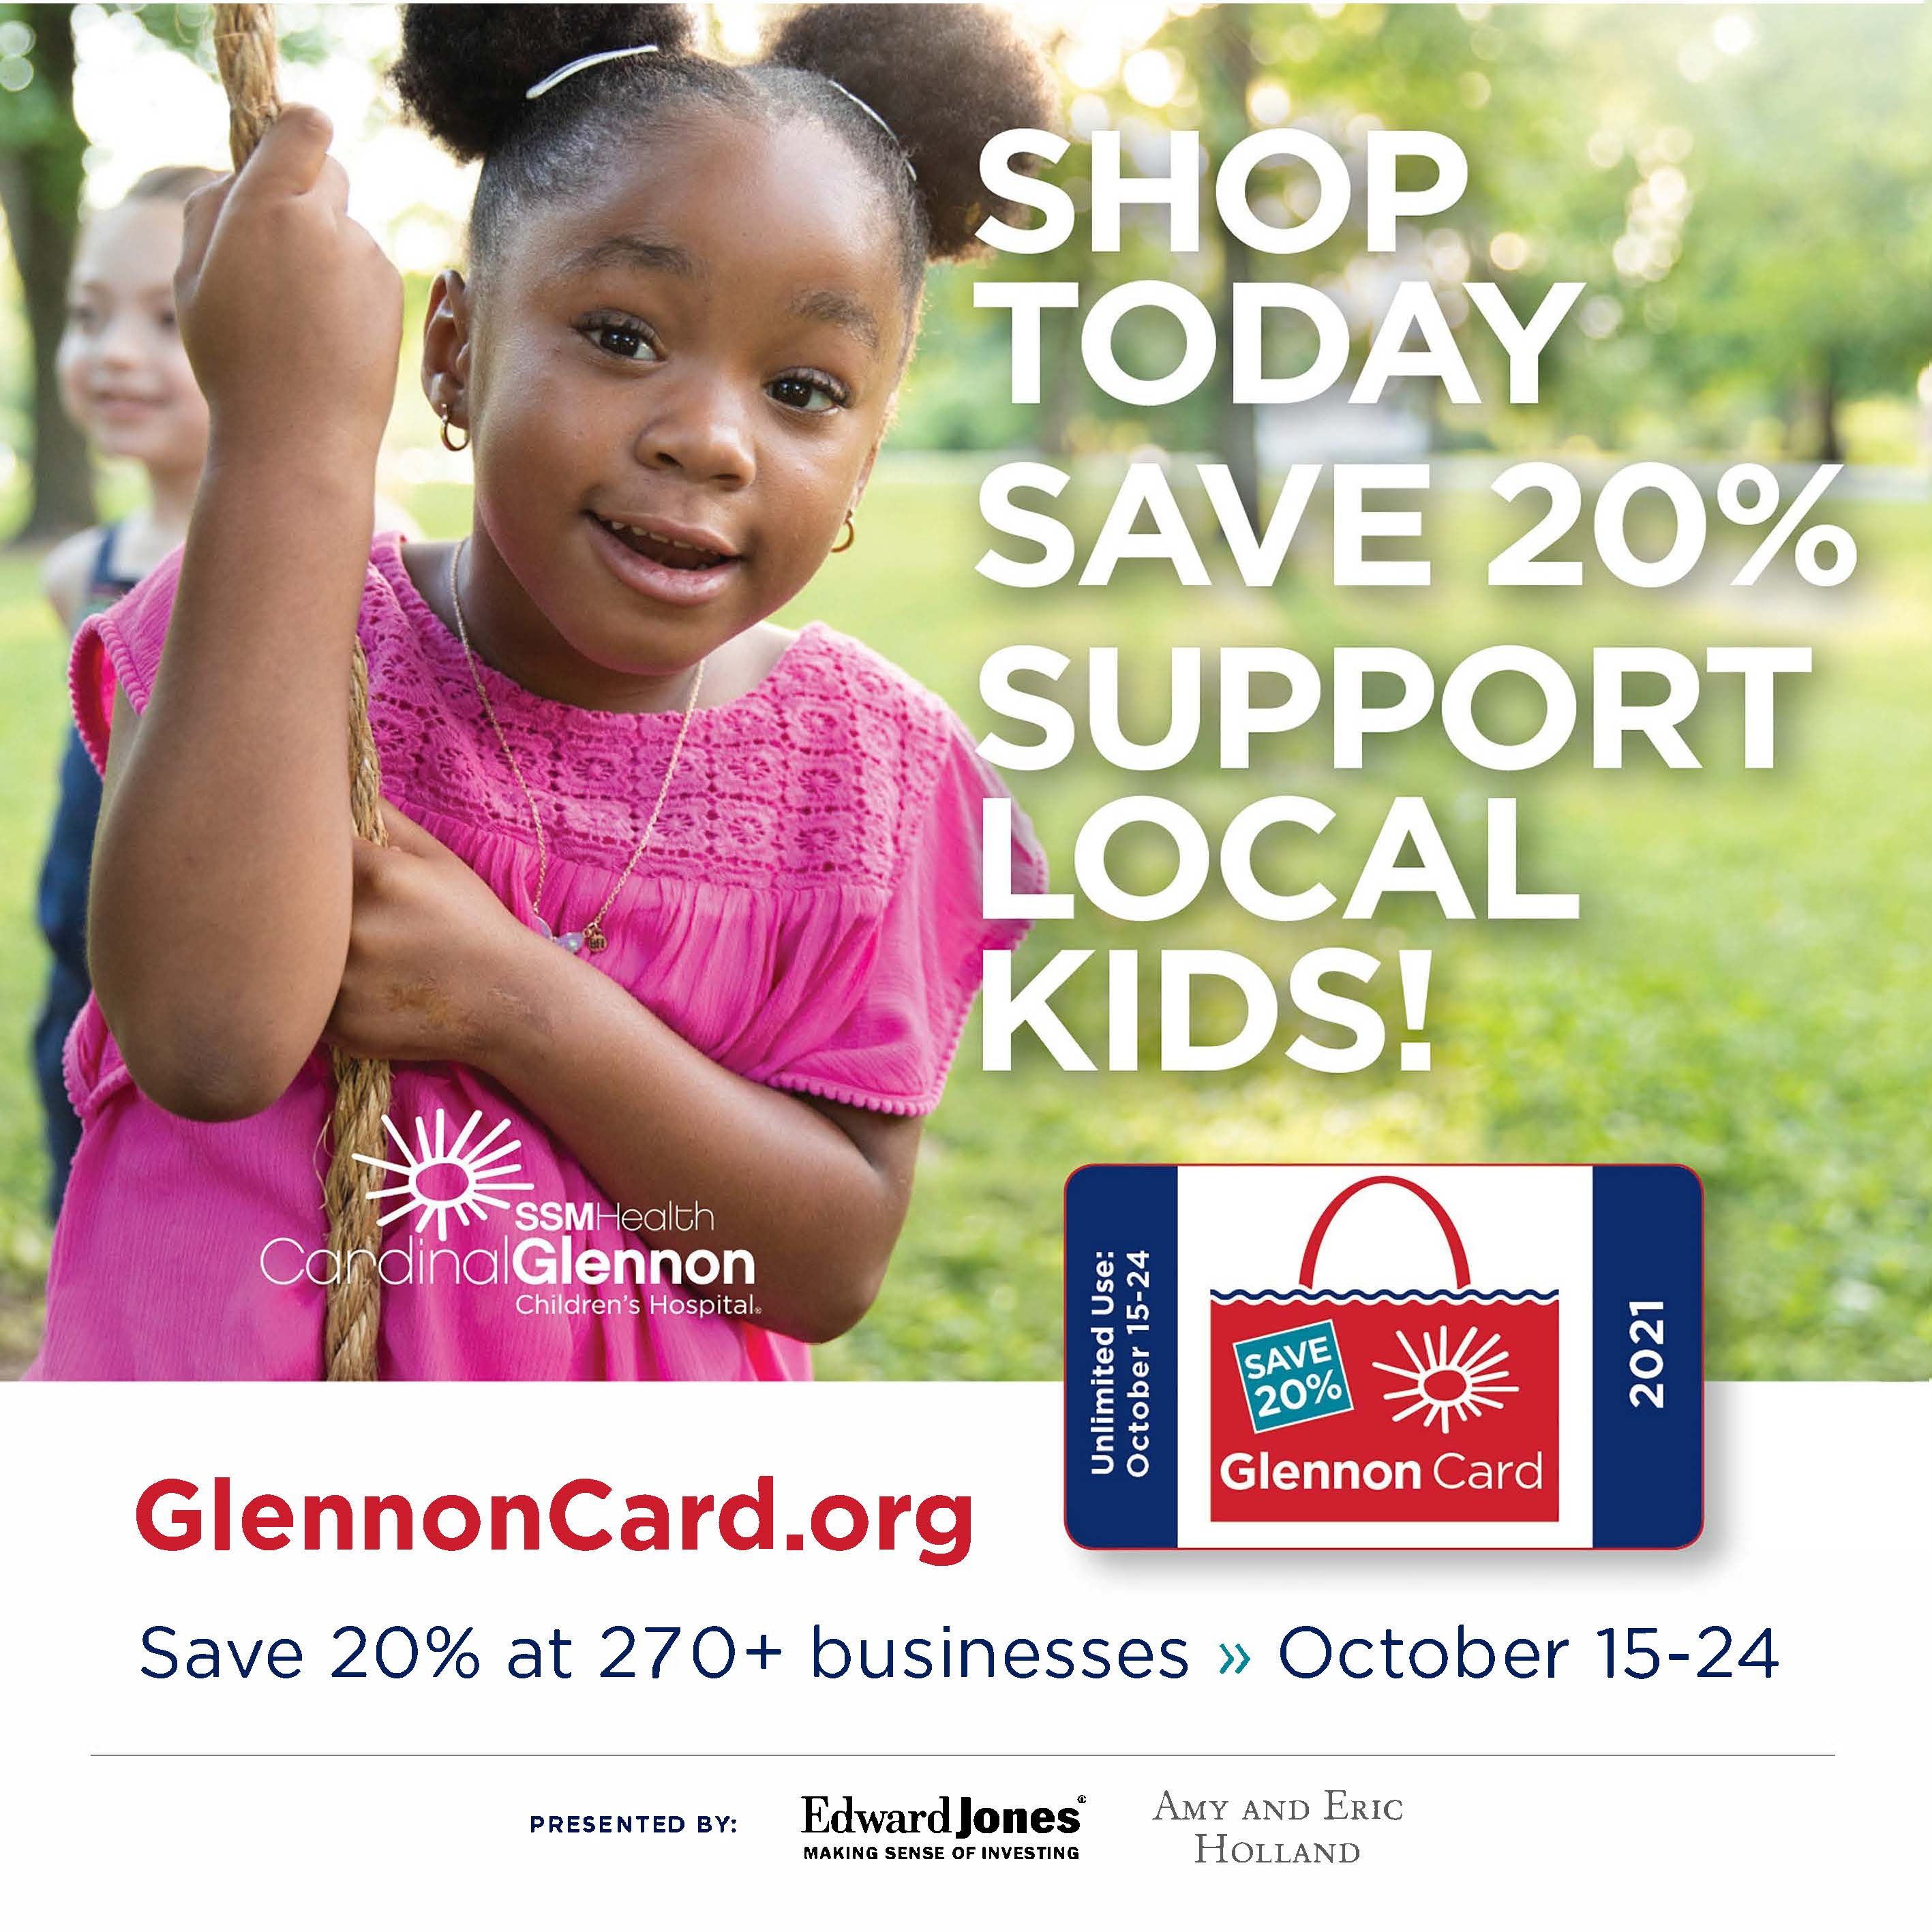 shop local and support local kids